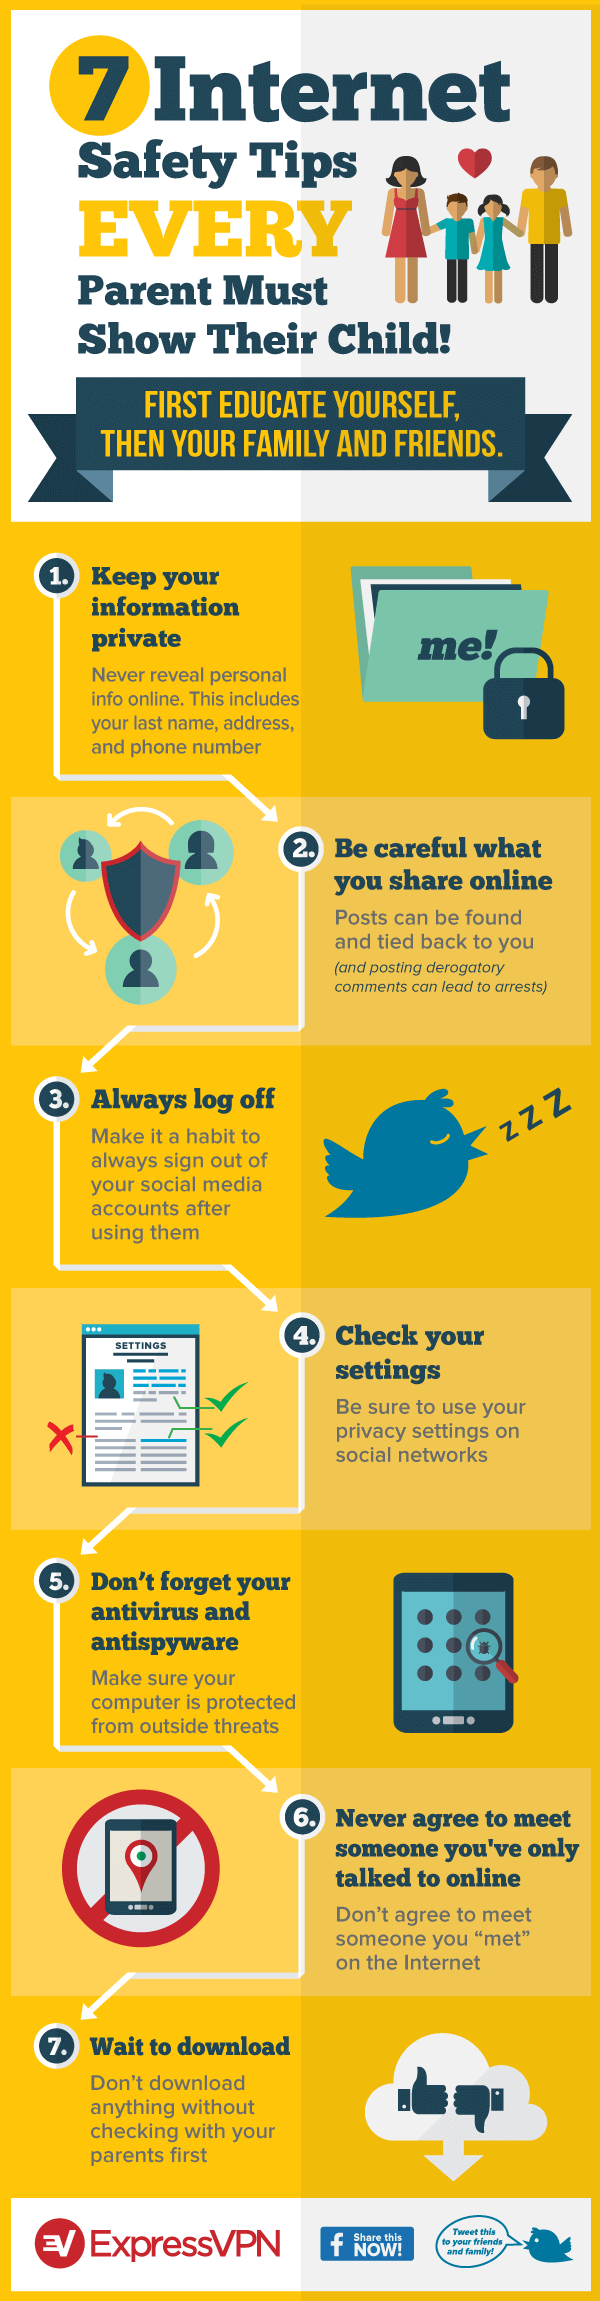 7 internet safety tips every parent must show their child - infographic